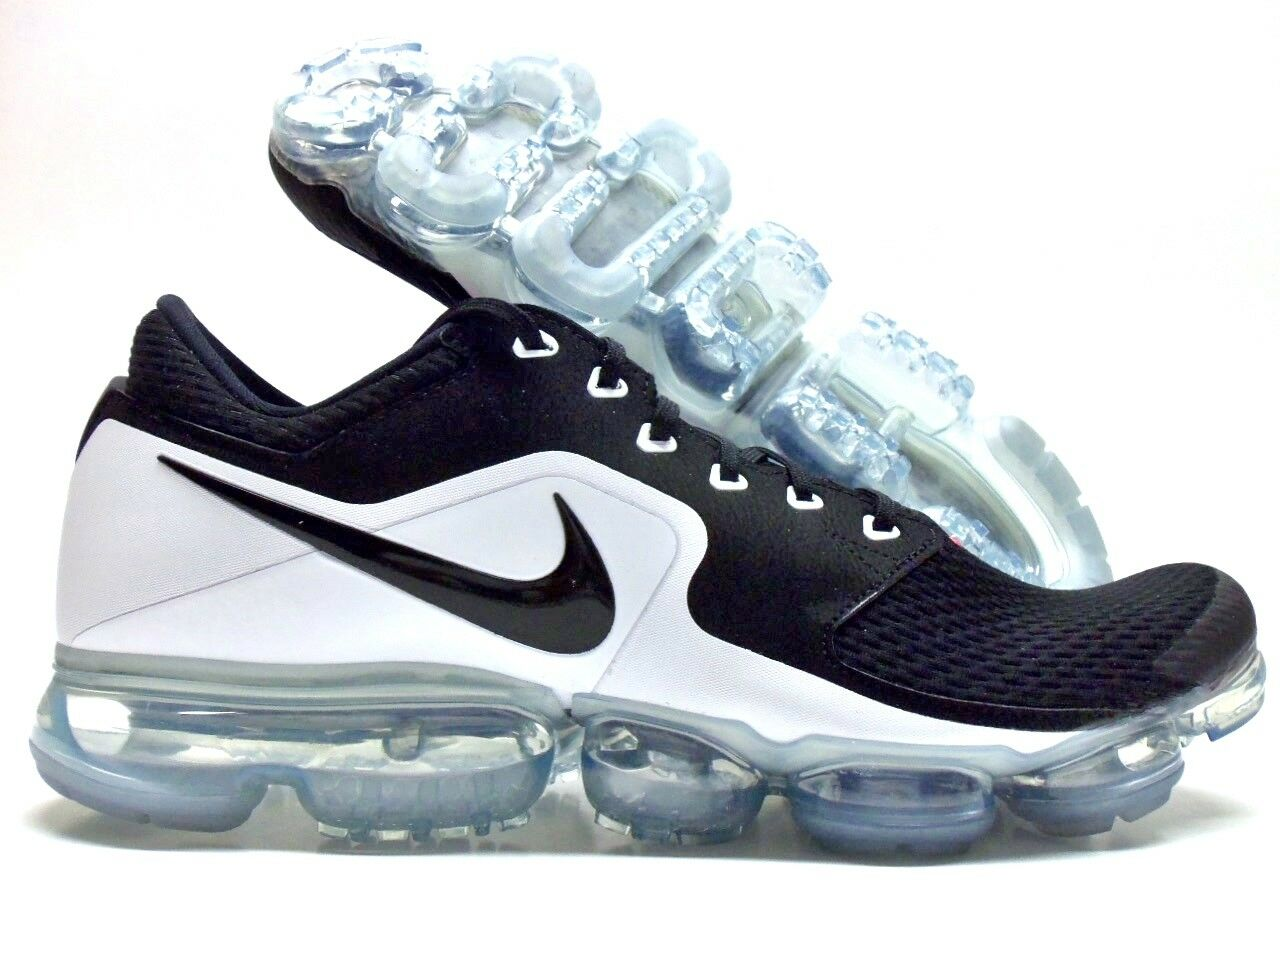 NIKE AIR VAPORMAX BLACK/WHITE-METALLIC SILVER SILVER SILVER SIZE MEN'S 12 [AH9046-003] 99458e